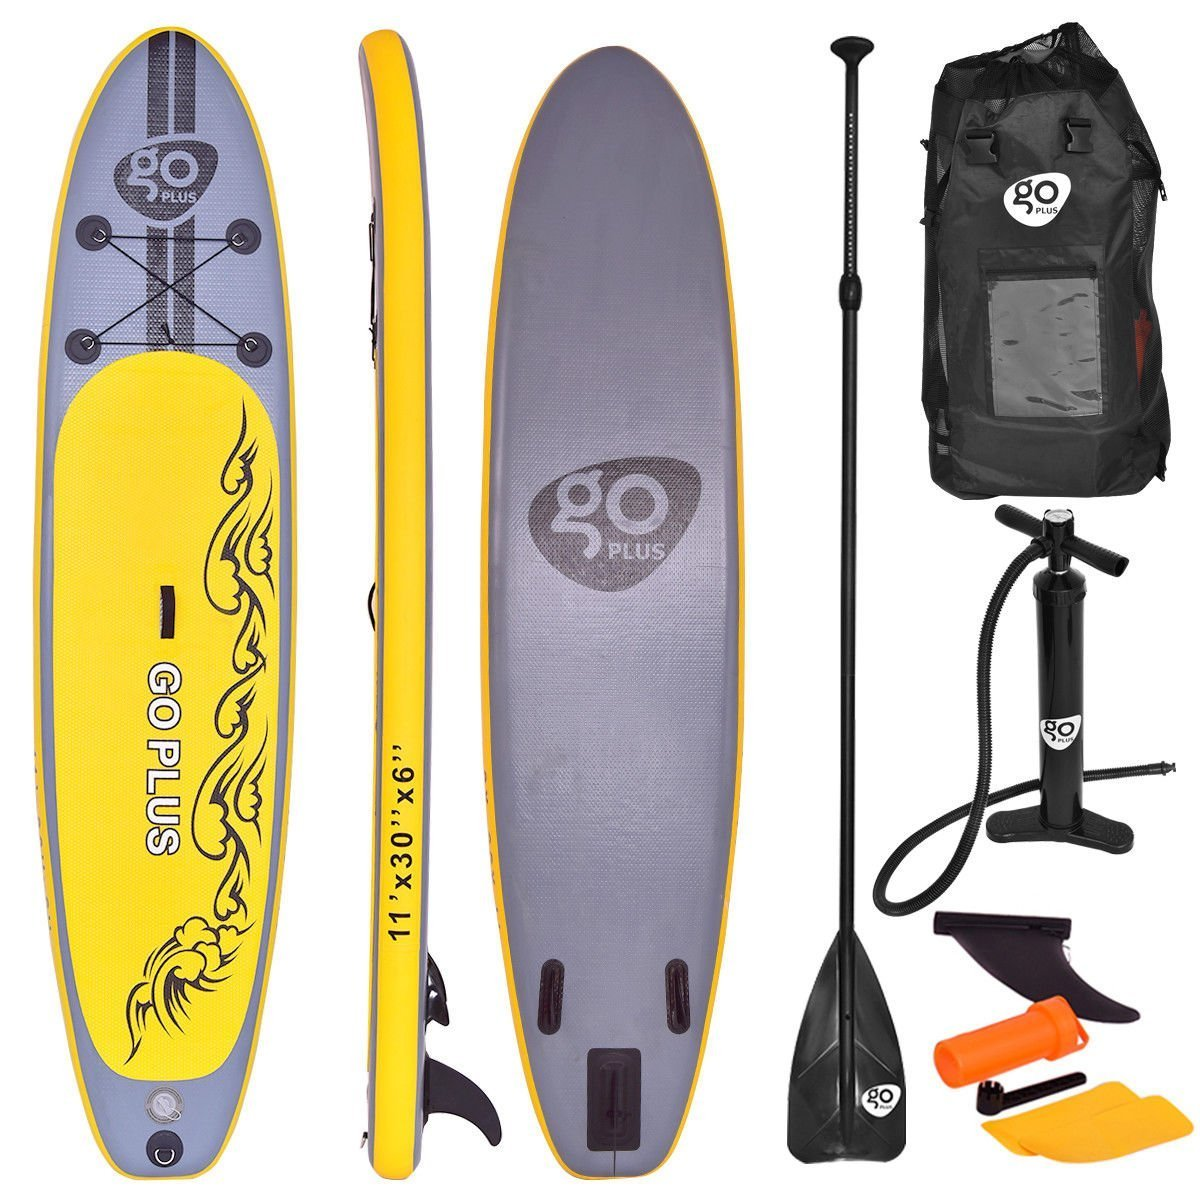 Goplus Inflatable Stand up Paddle Board Surfboard SUP Board with Adjustable Paddle Carry Bag Manual Pump Repair Kit Removable Fin for All Skill Levels, 6'' Thick (Yellow, 11 FT)